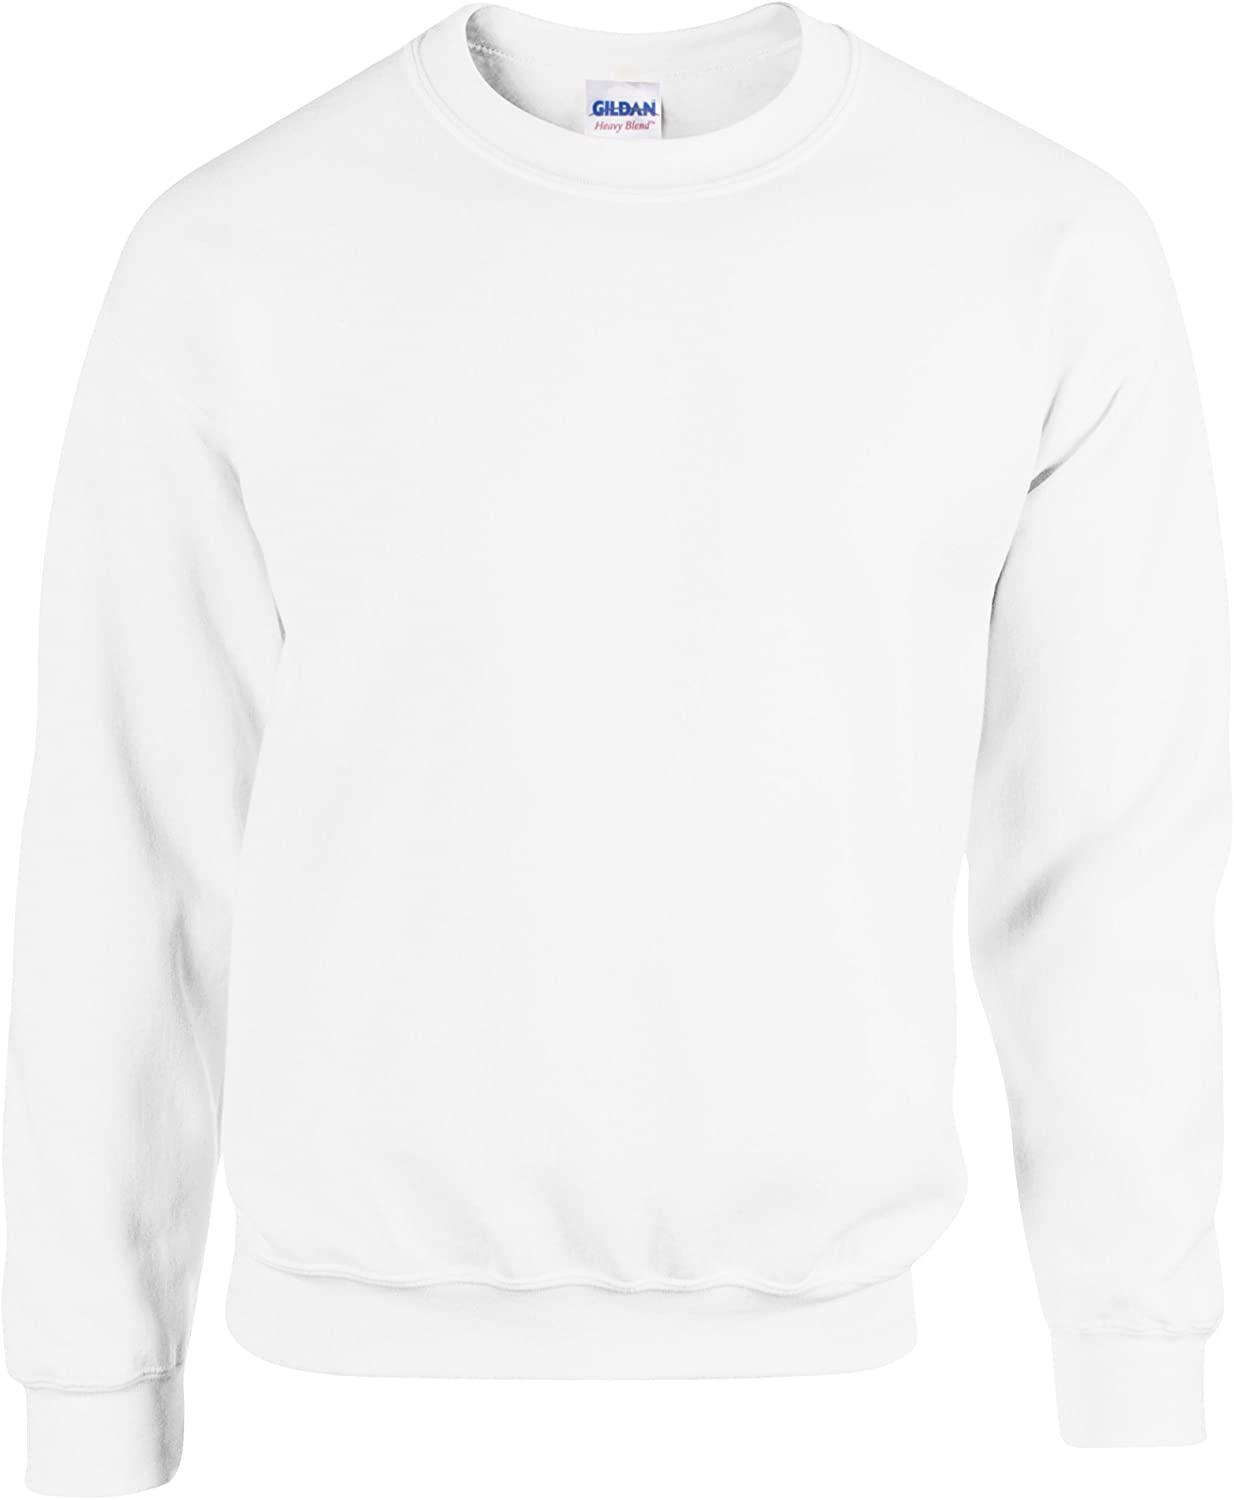 Gildan HeavyBlend Adult Crew Neck Sweatshirt